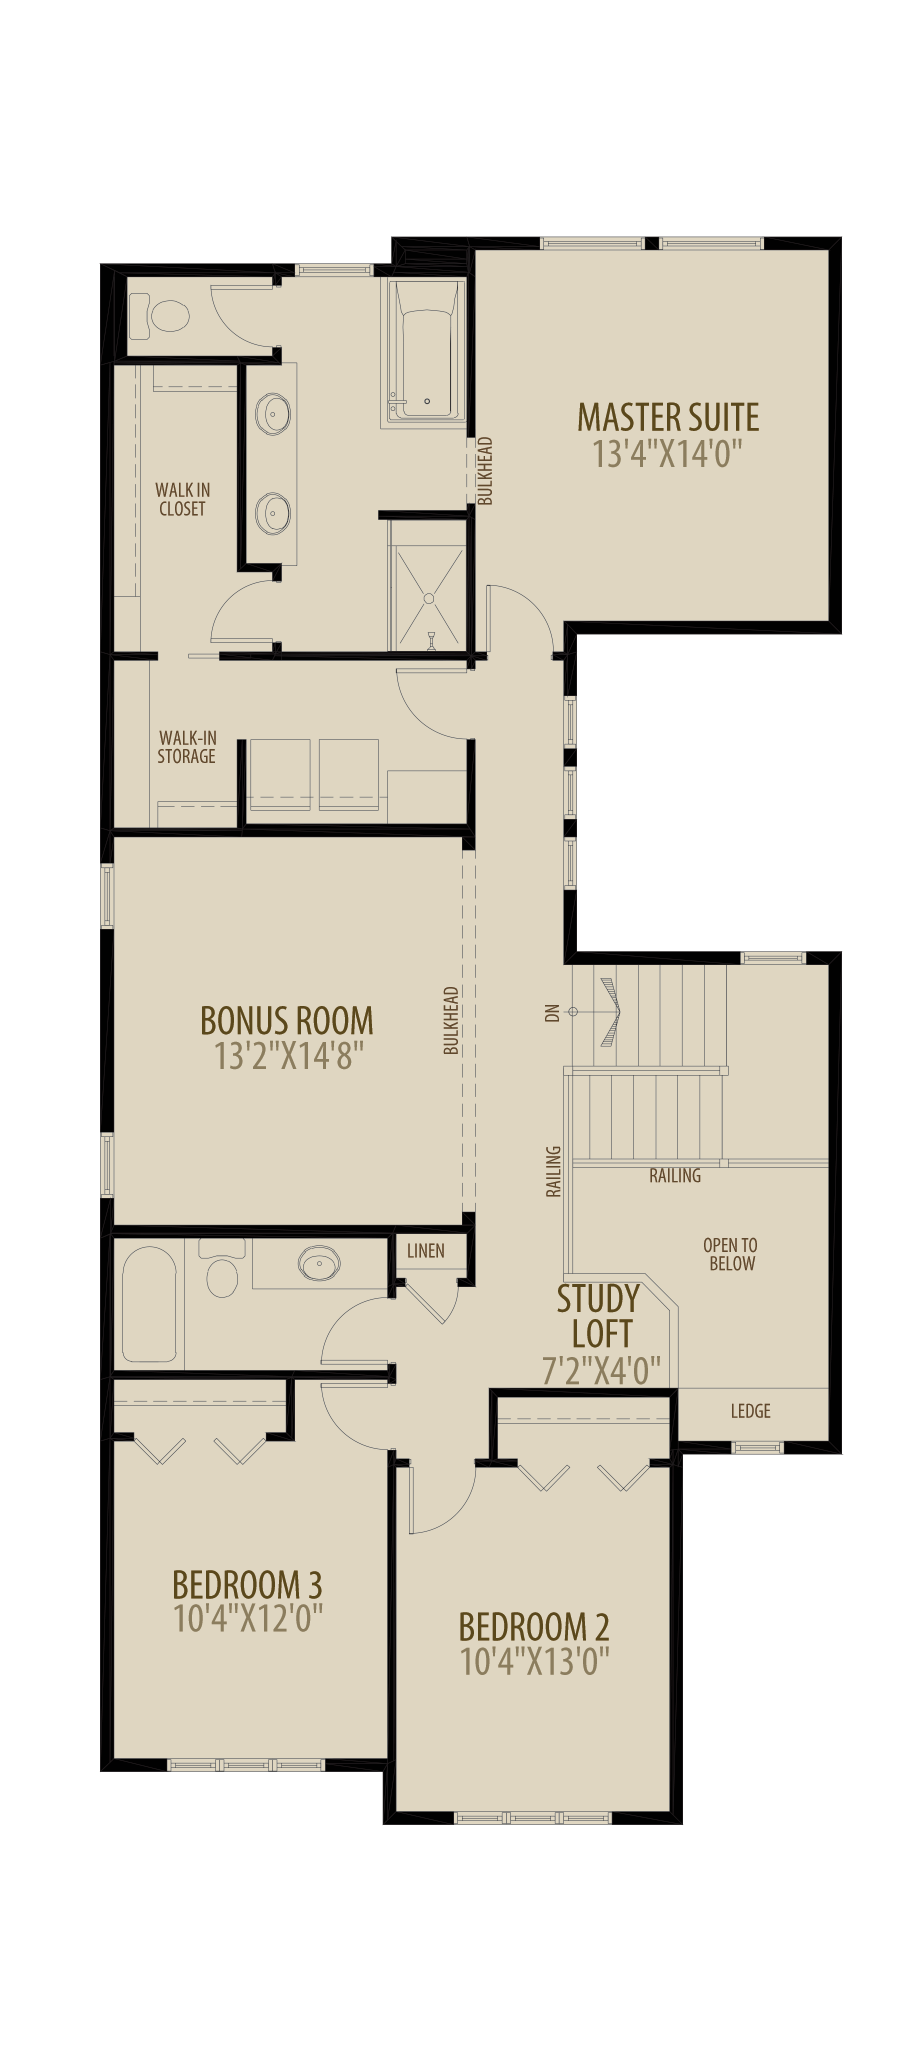 Extended Bedrooms adds 20 sq ft